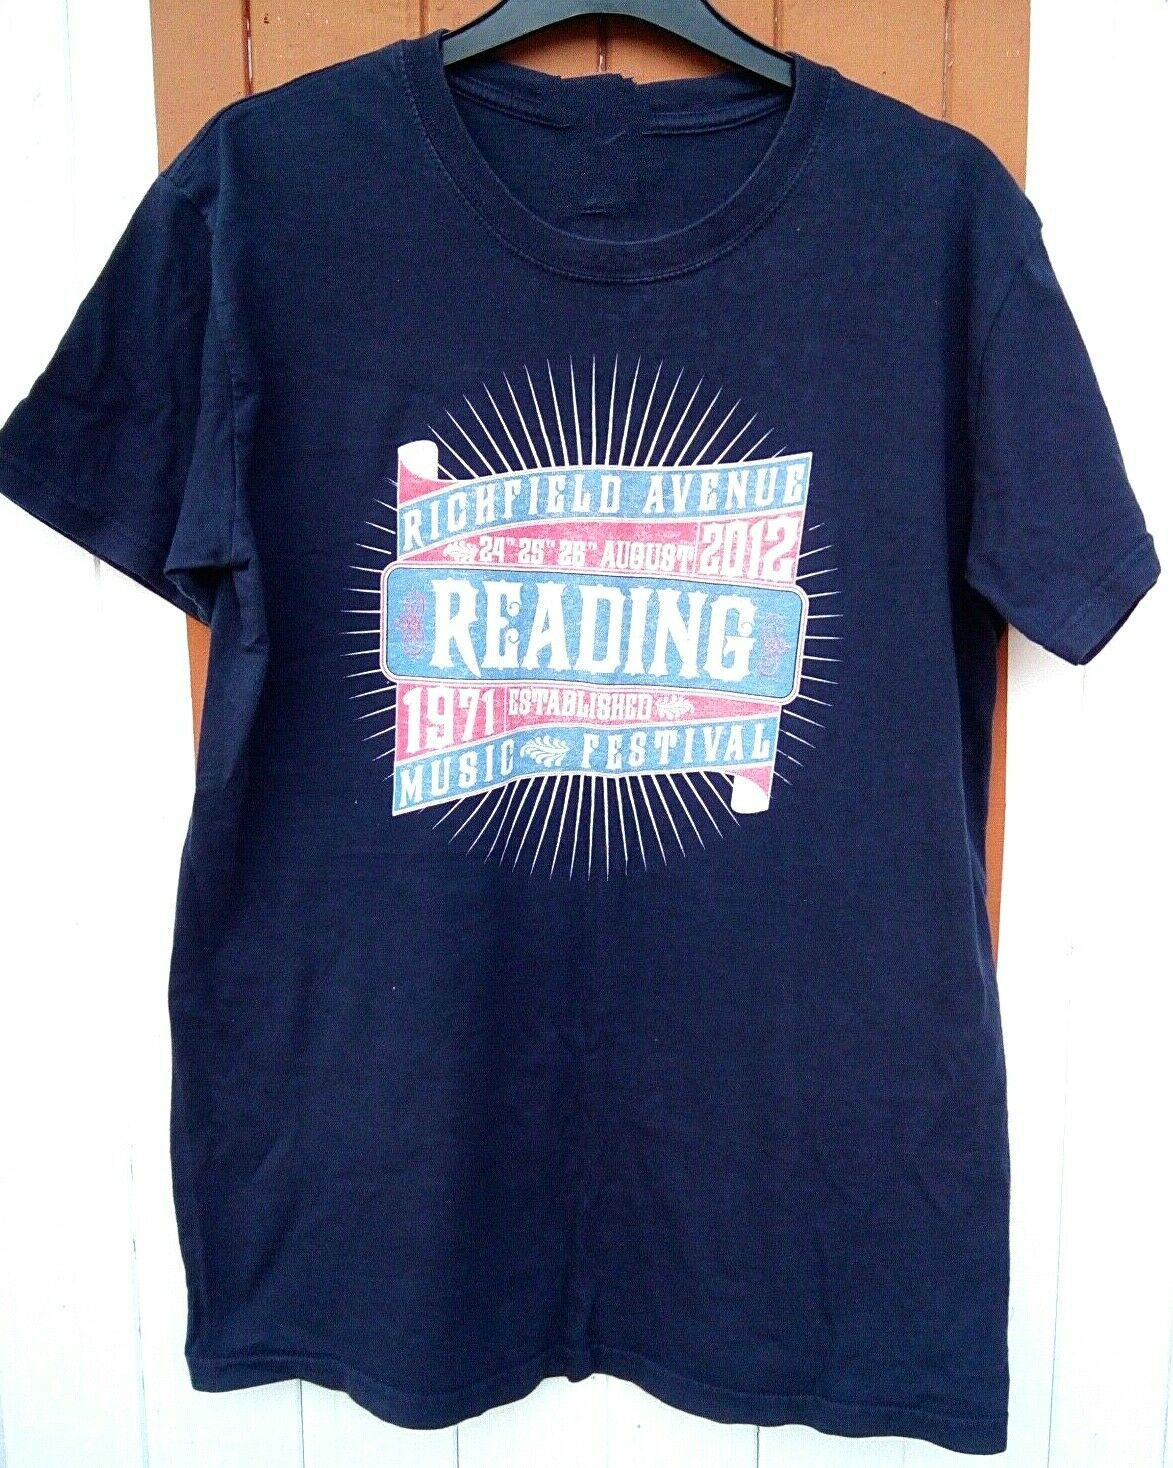 Reading Festival 2012 T-Shirt - Foo Band Fighters, Kasabian Unisex Size S-3Xl image